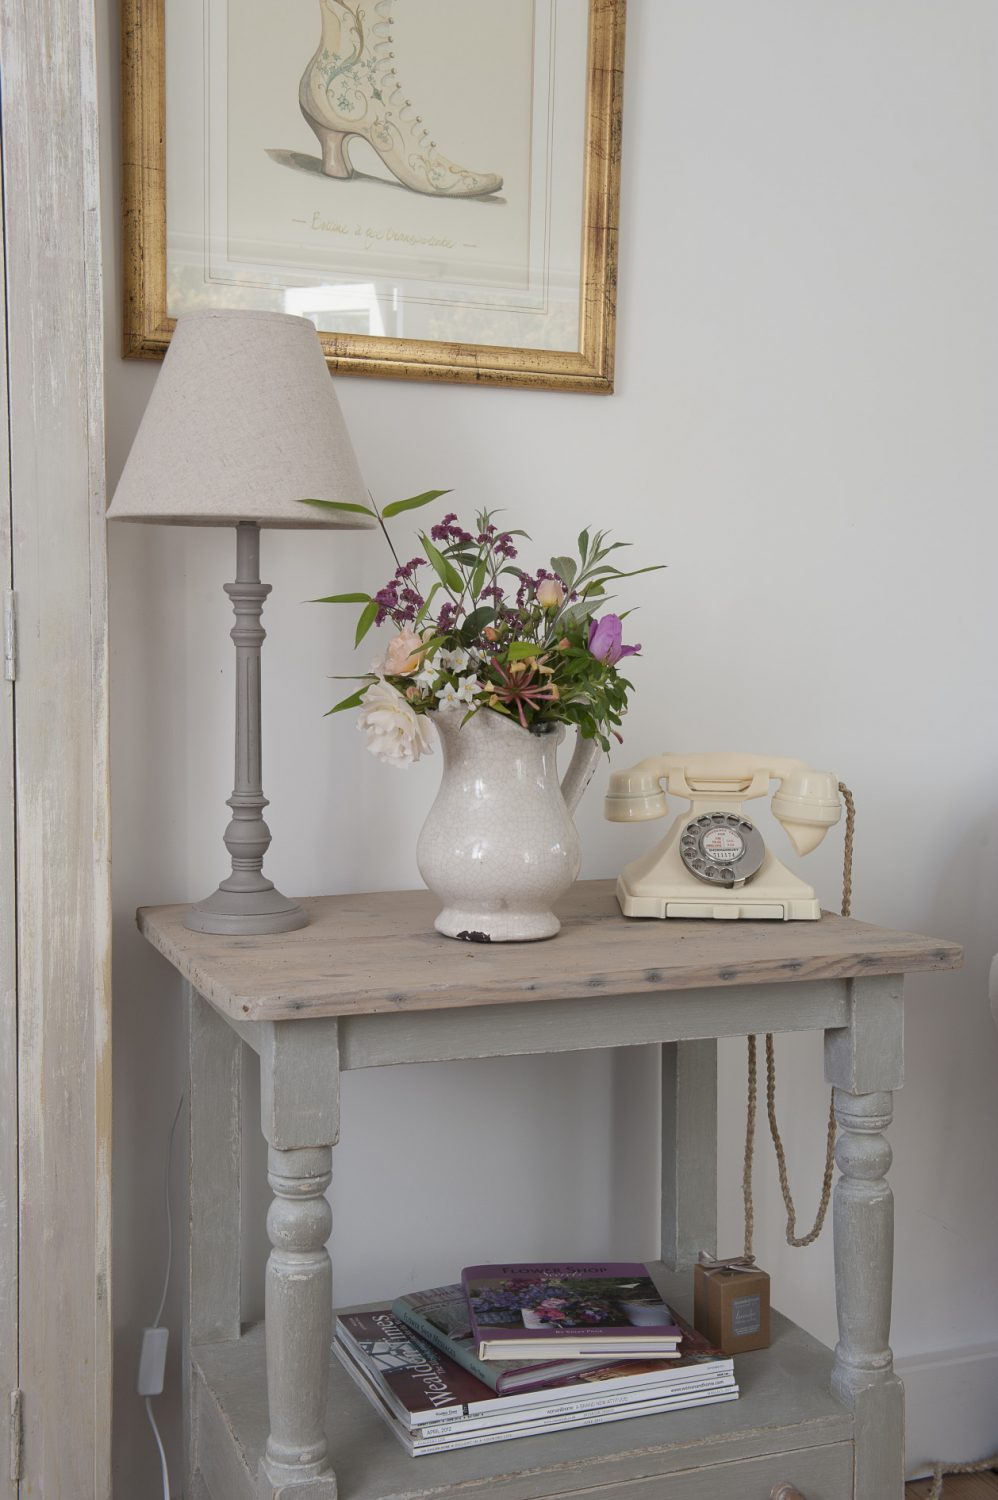 Farrow & Ball's 'All White', used throughout the house, cleverly provides subtle variations of shade depending on the quality of the light and the angle it strikes wall or ceiling